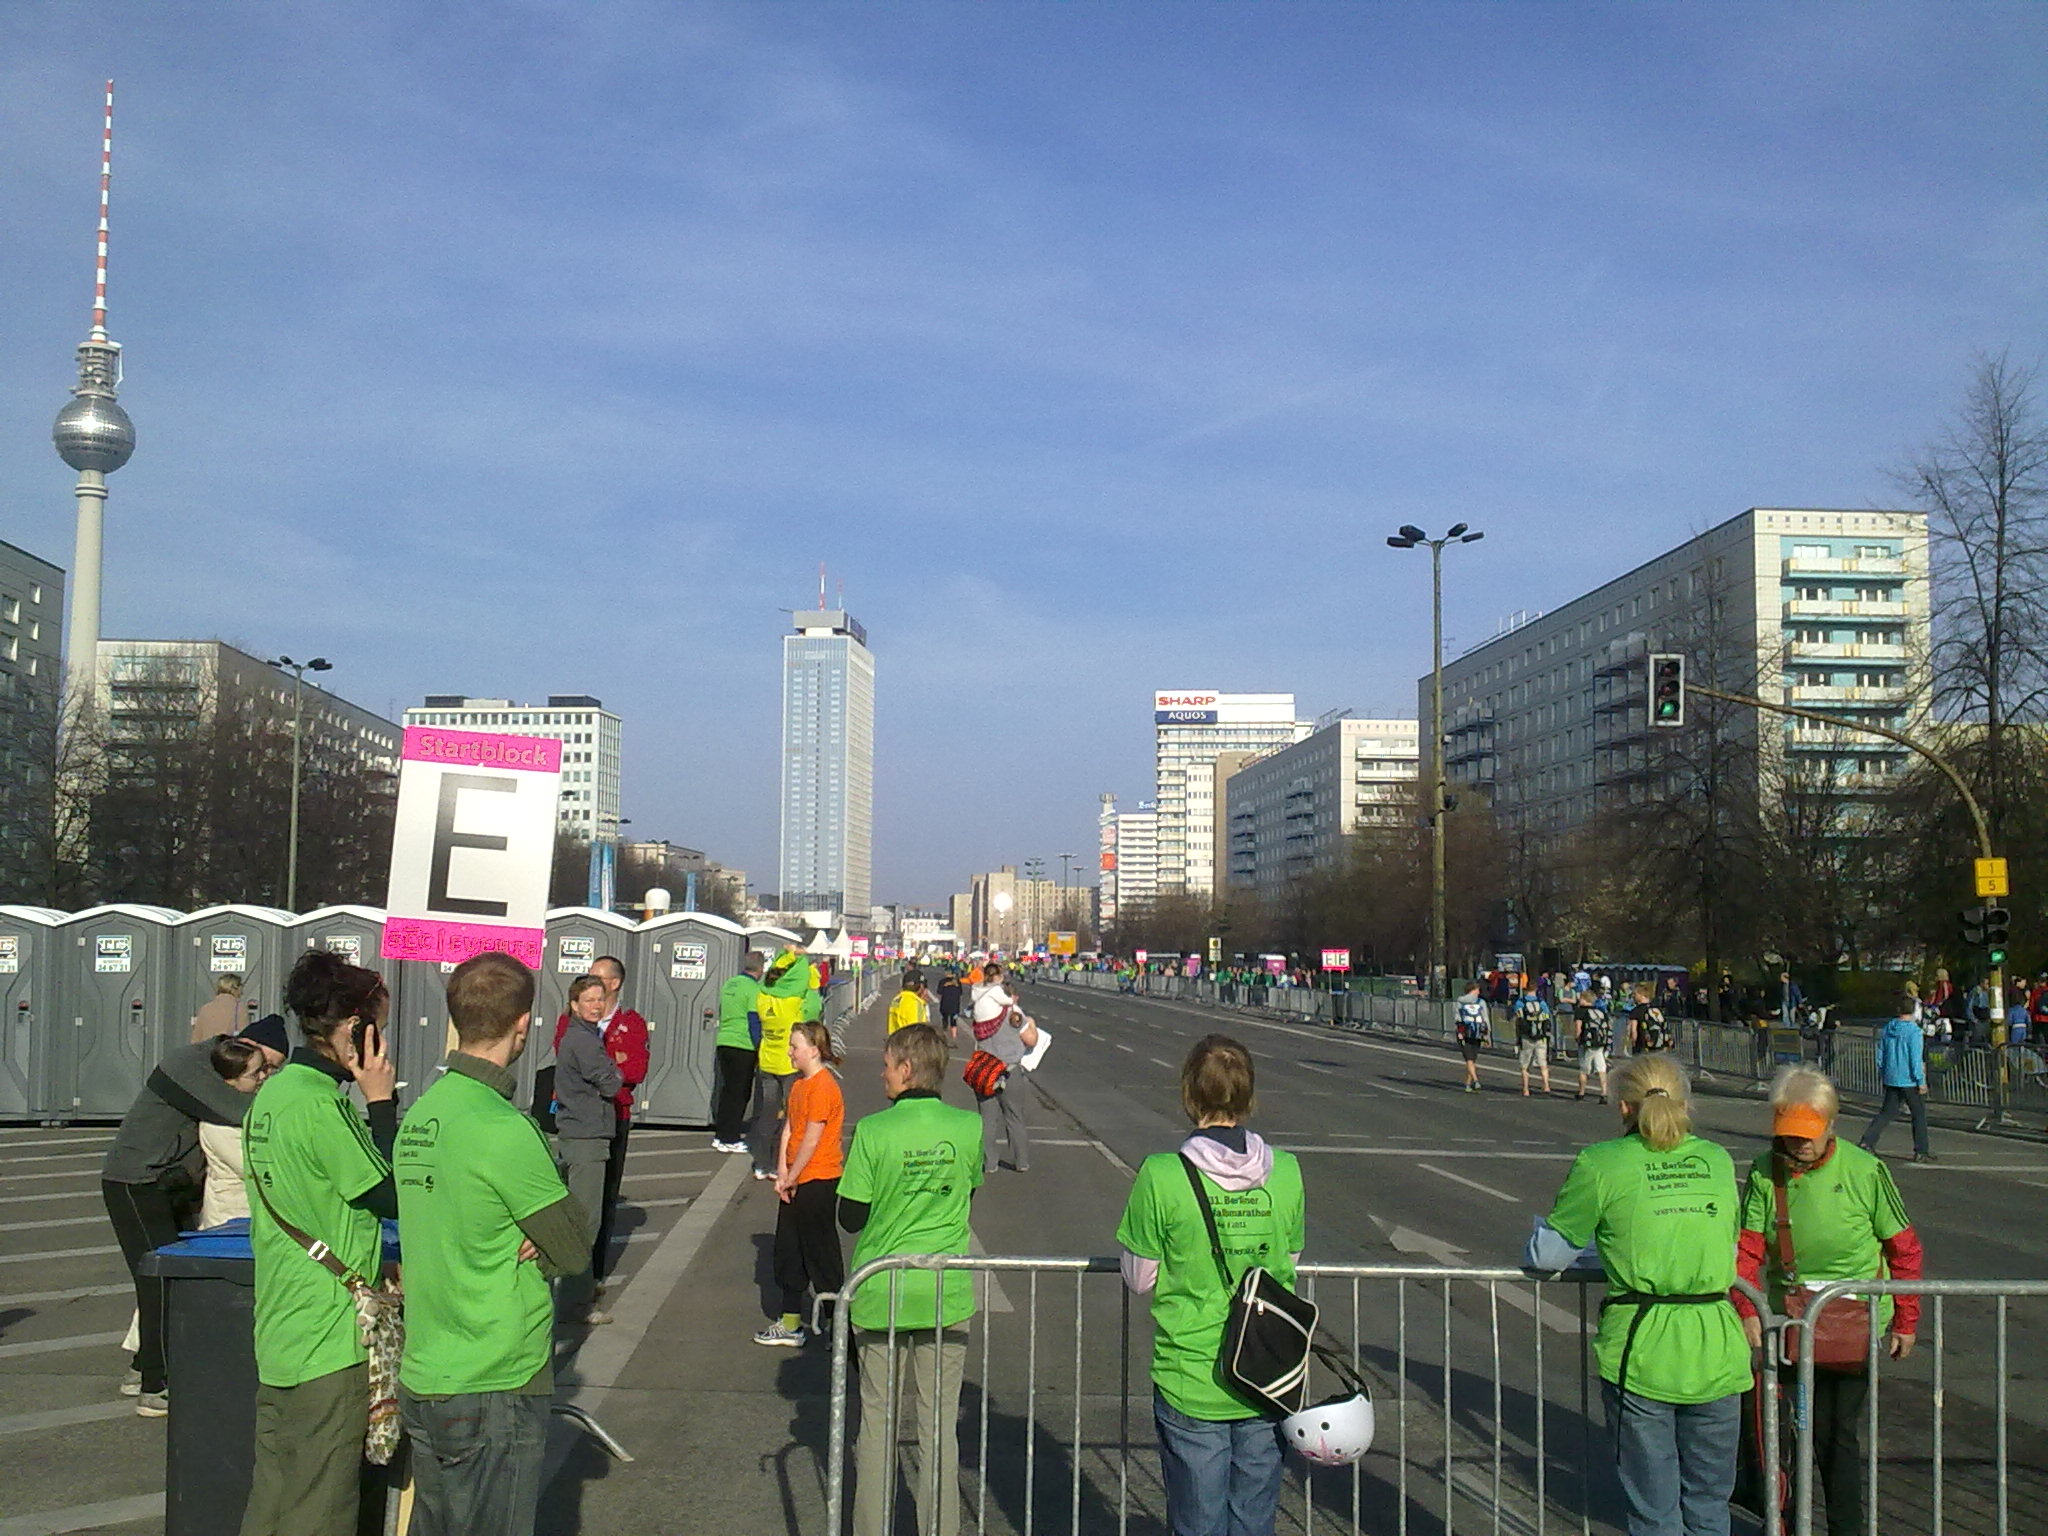 Berlin Halbmarathon Start